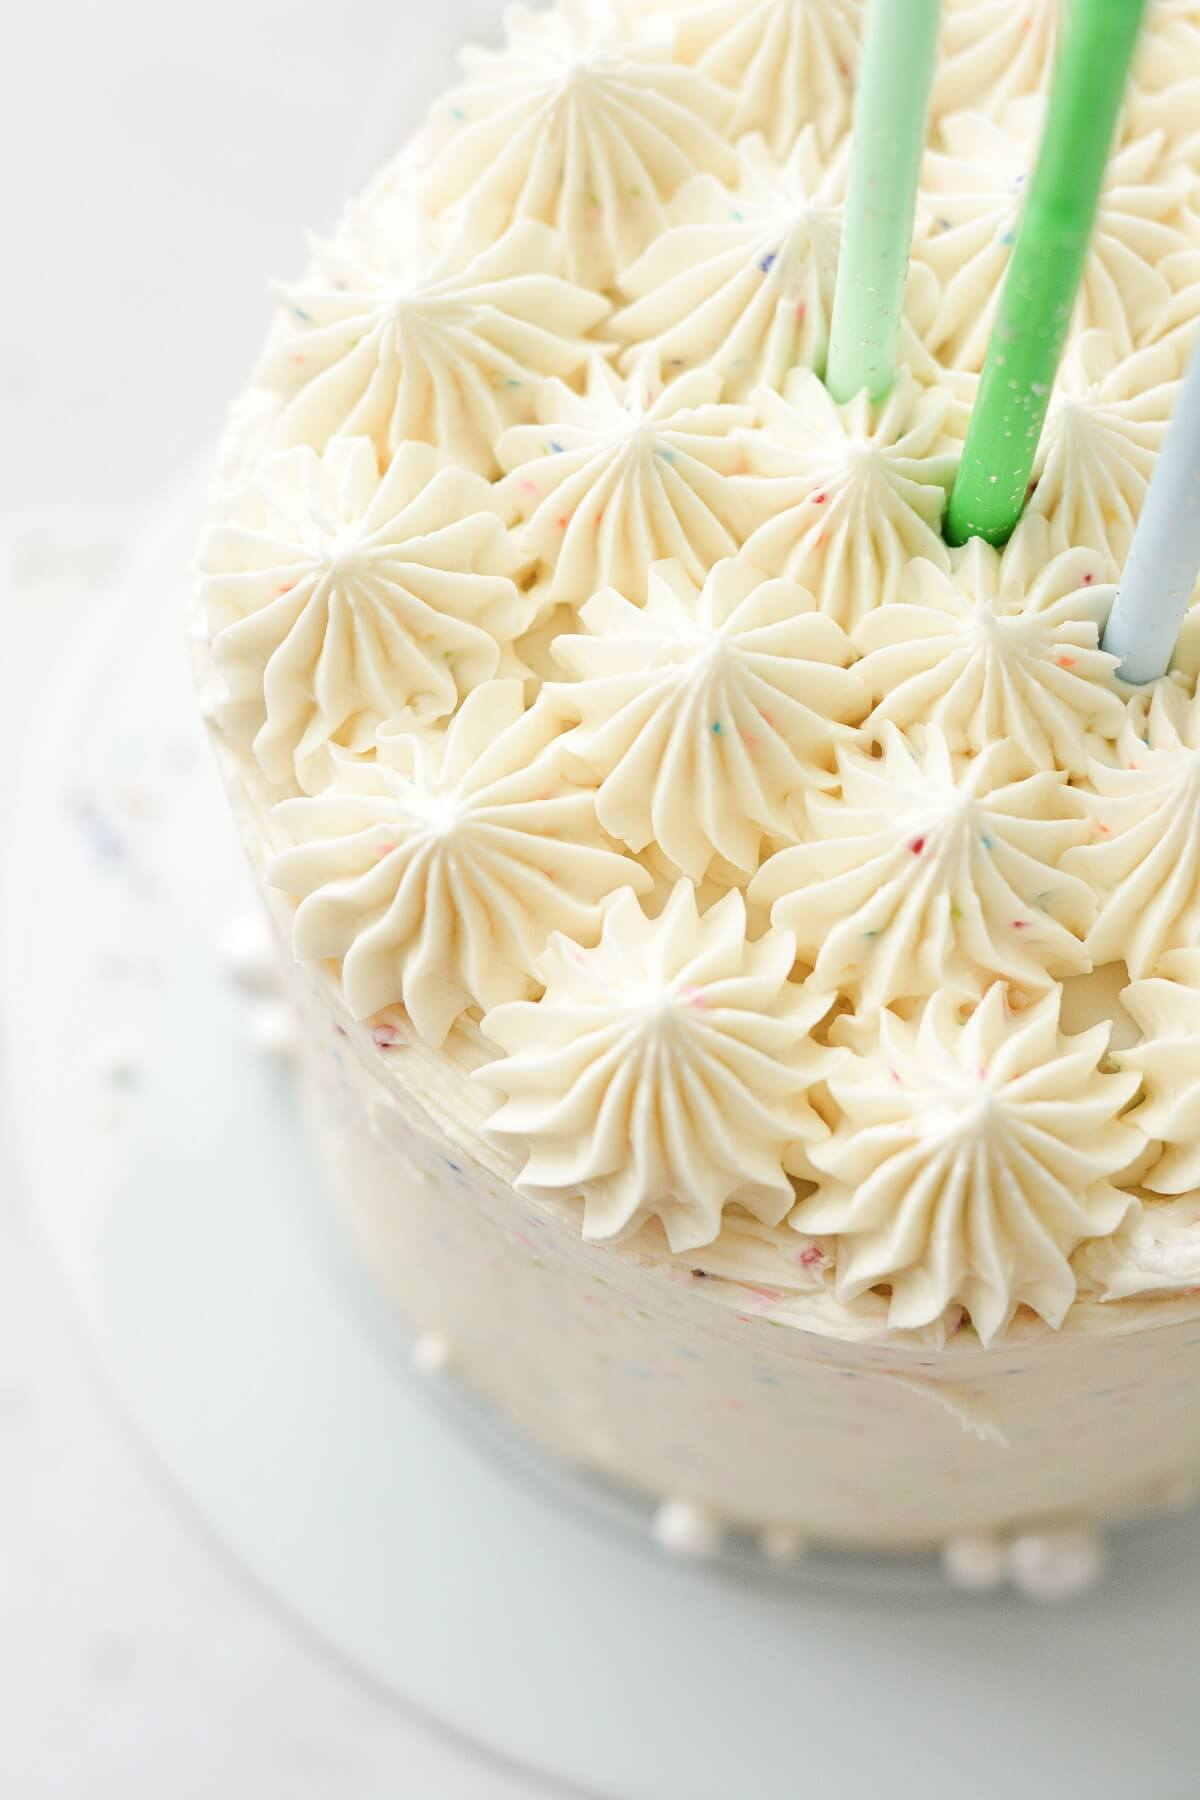 Piped buttercream on top of a birthday cake.